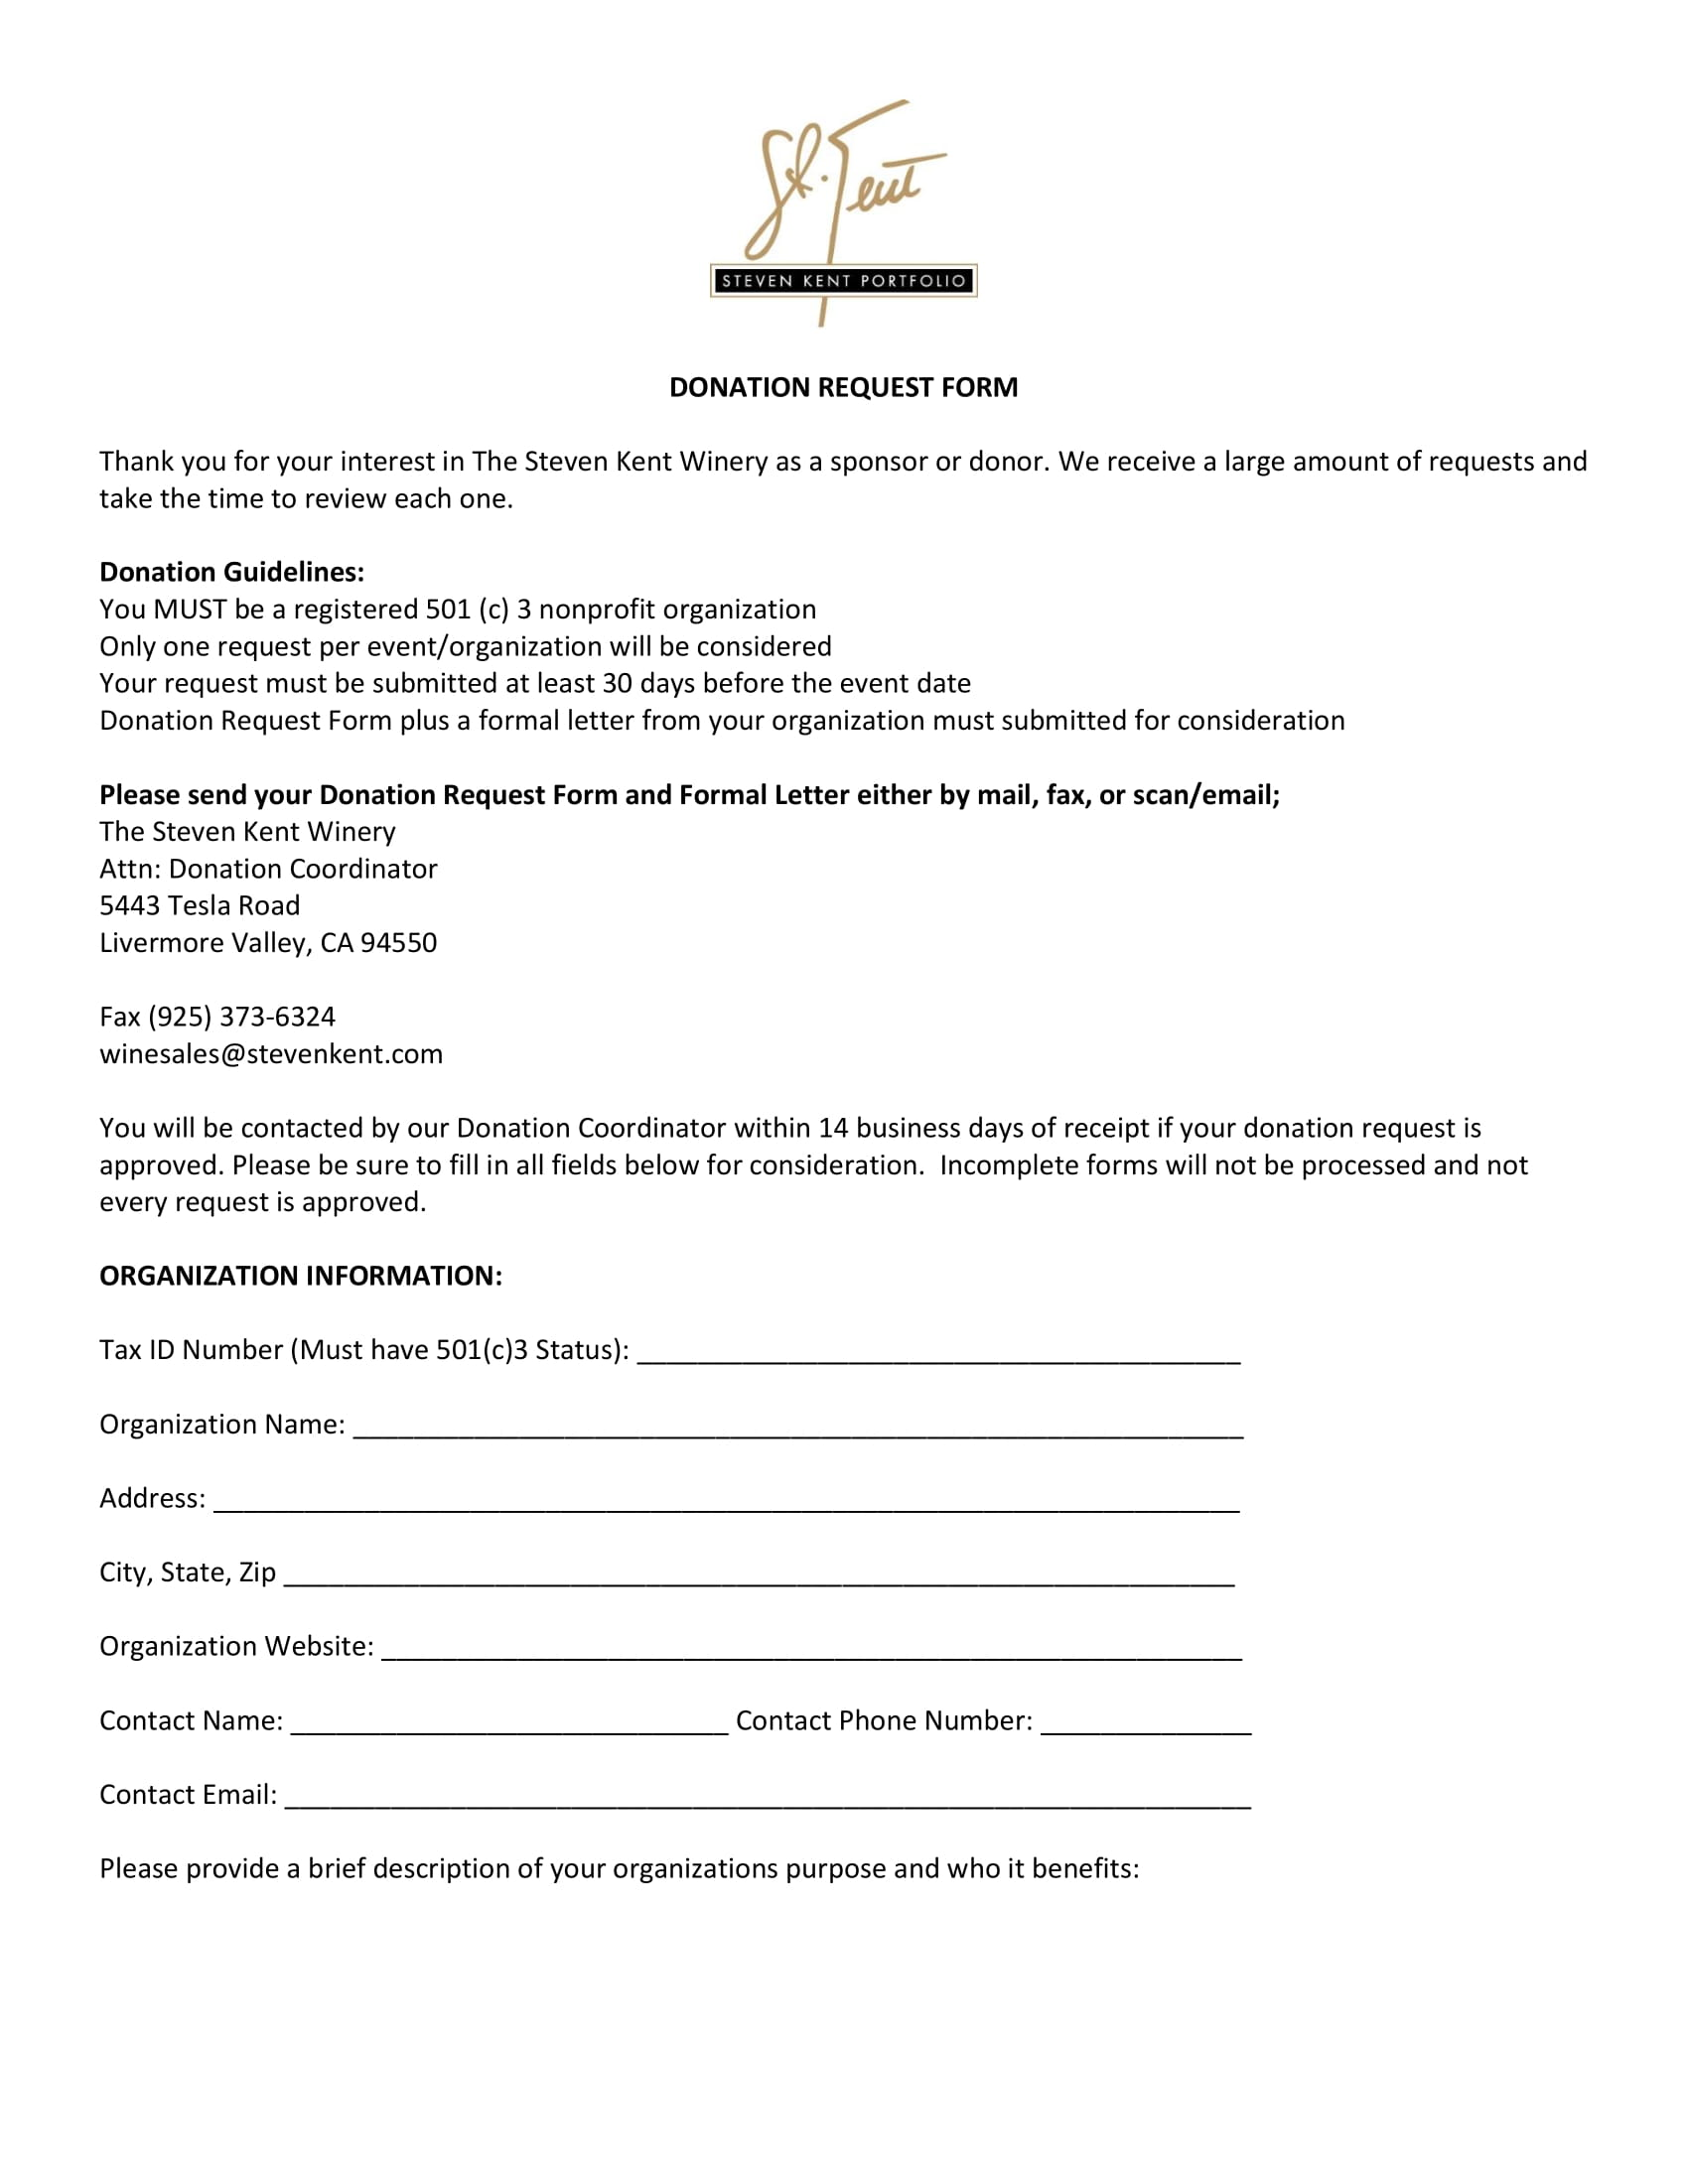 Donation-Request-Form-1 Tax Forms Completed Examples on individual income tax examples, da form 4856 counseling examples, tax rate examples, federal income tax examples, completed job application form examples, hand filling out 1040 tax form examples,